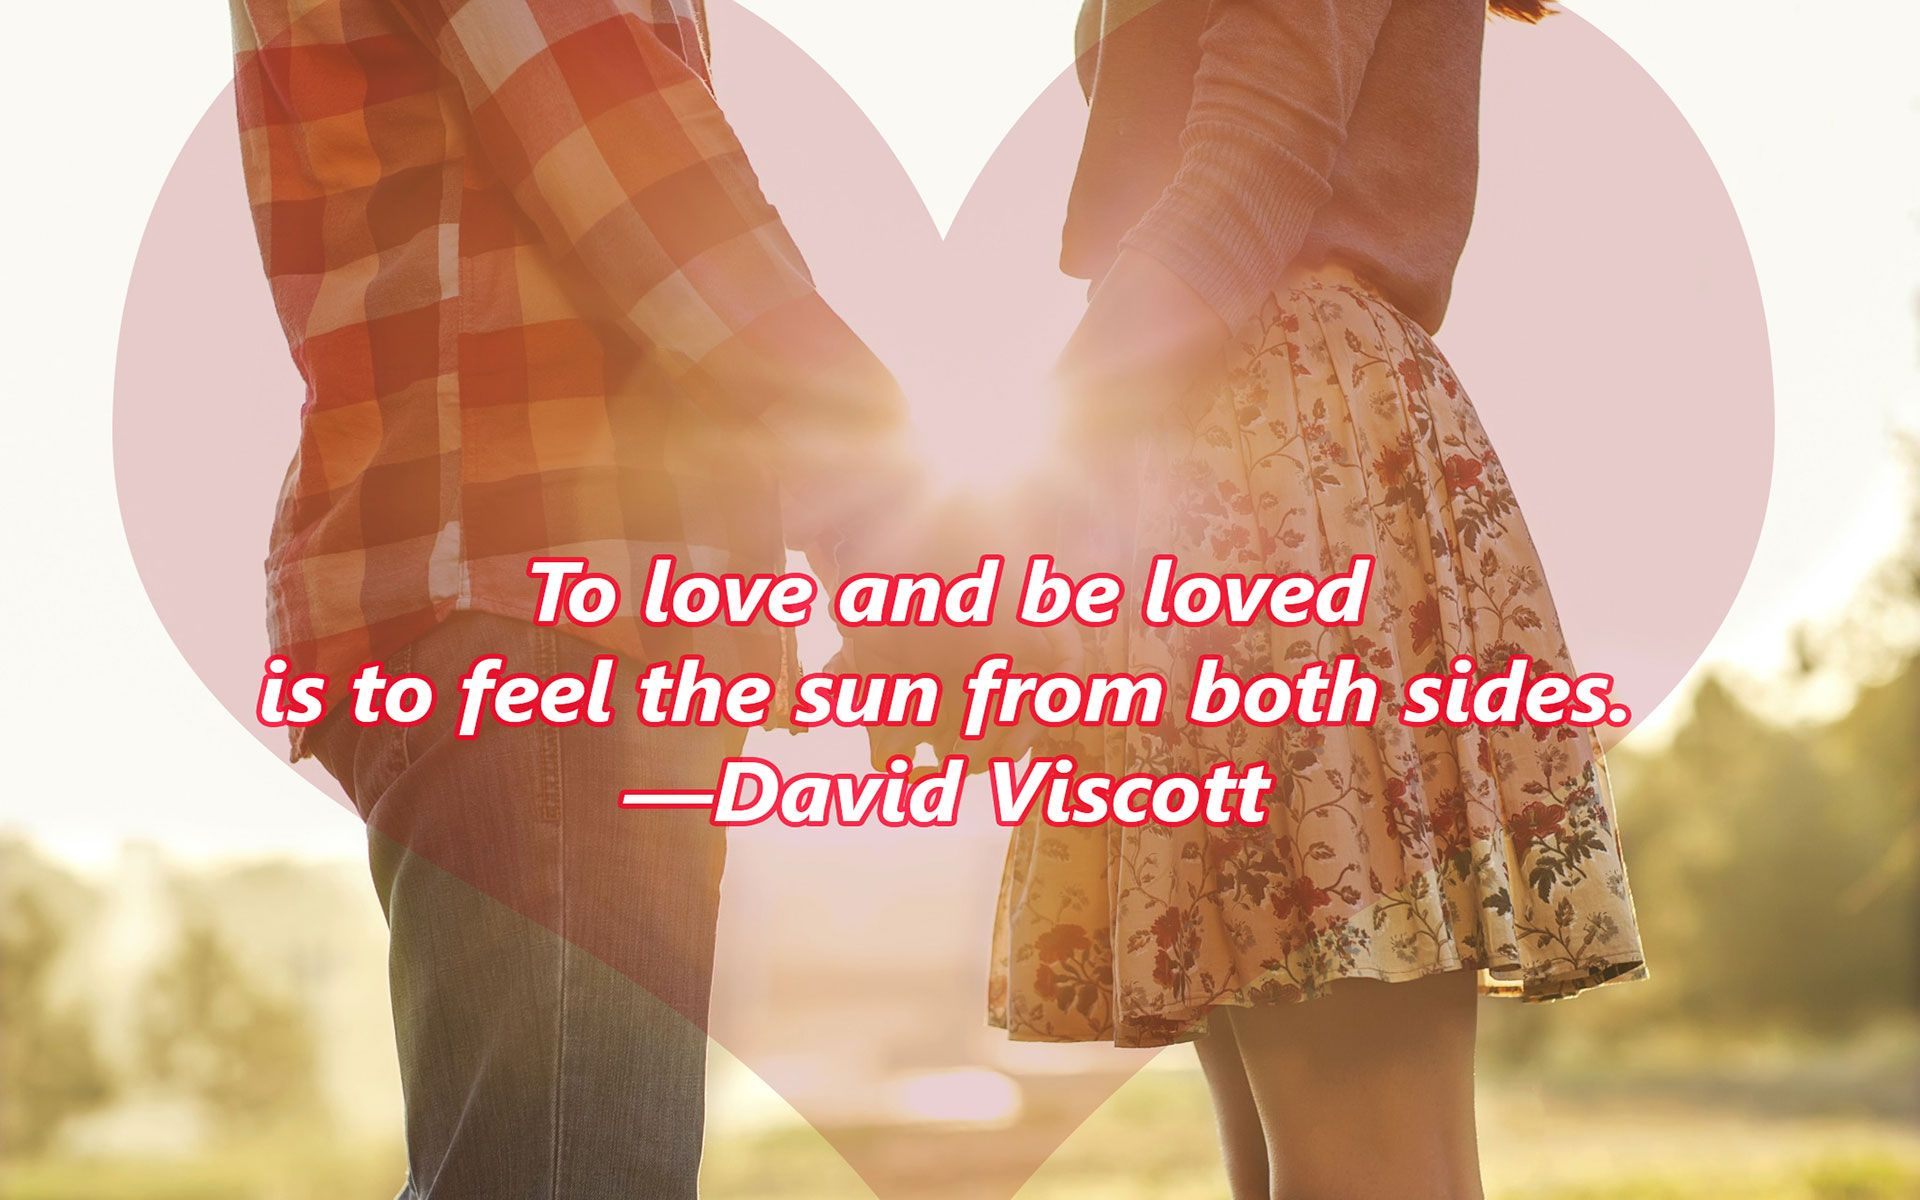 Cute Couple Wallpapers With Quotes 1080p Love Quotes Wallpaper Romantic Couple Images Best Love Images